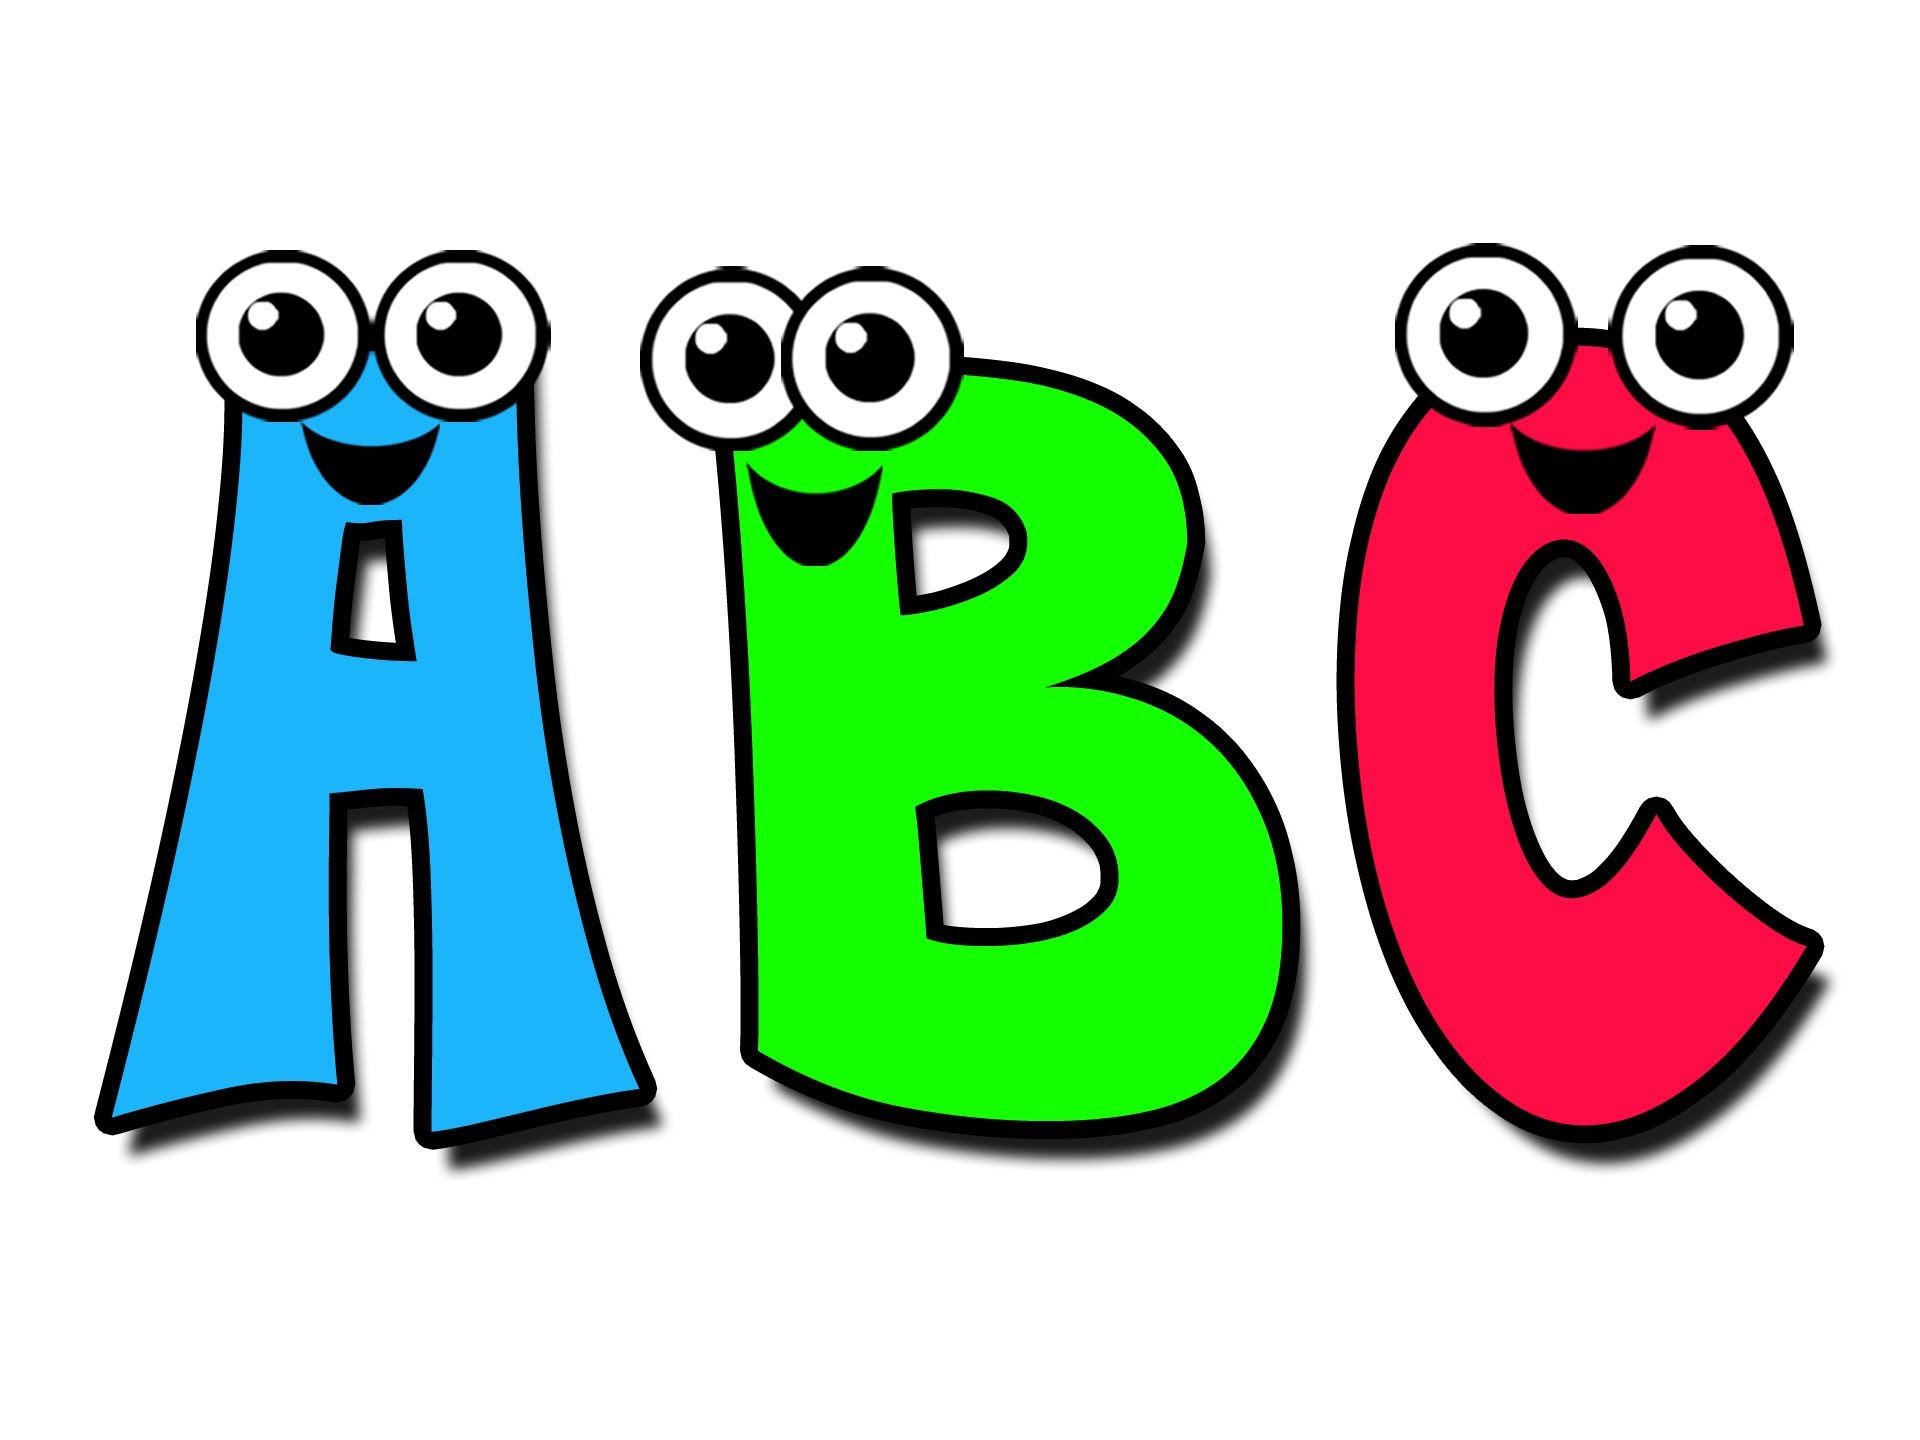 1920x1440 Abc Alphabet Songs Collection Vol. 1